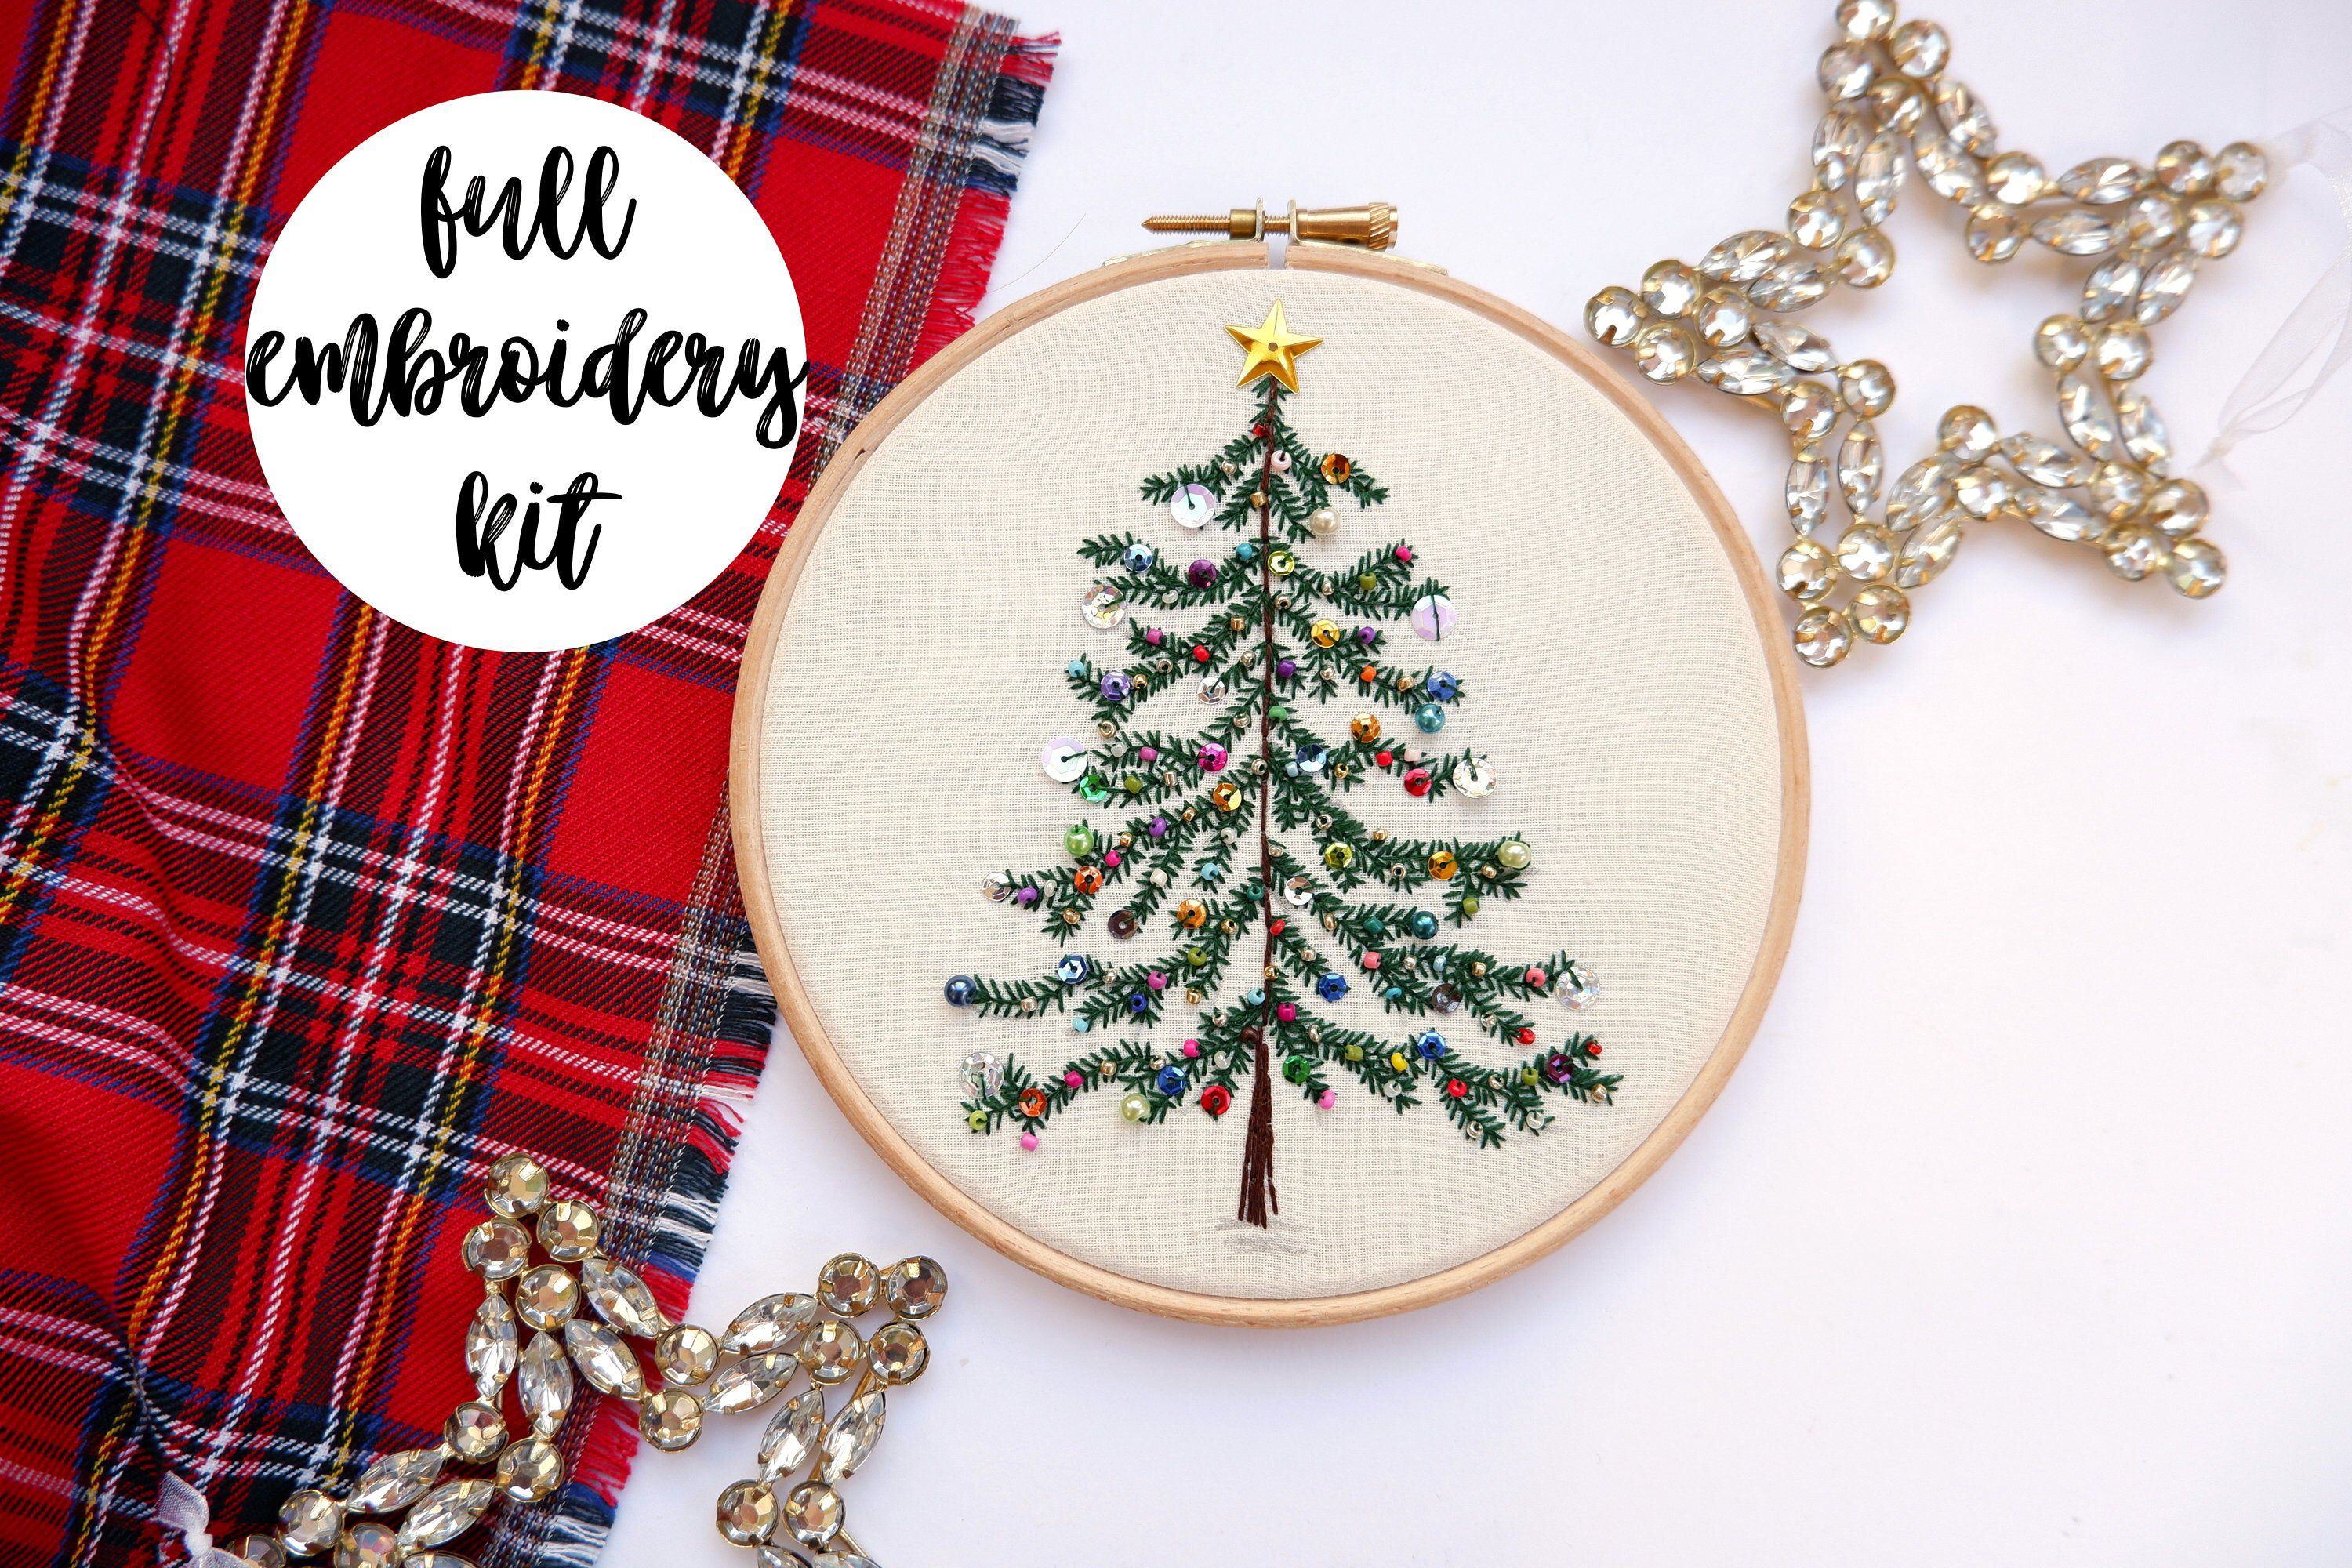 Beaded Christmas Tree Embroidery Kit International Listing By Bunnyandbloomcrafts On Etsy Https Www Etsy C Embroidery Kits Embroidery Kit Etsy Card Pattern